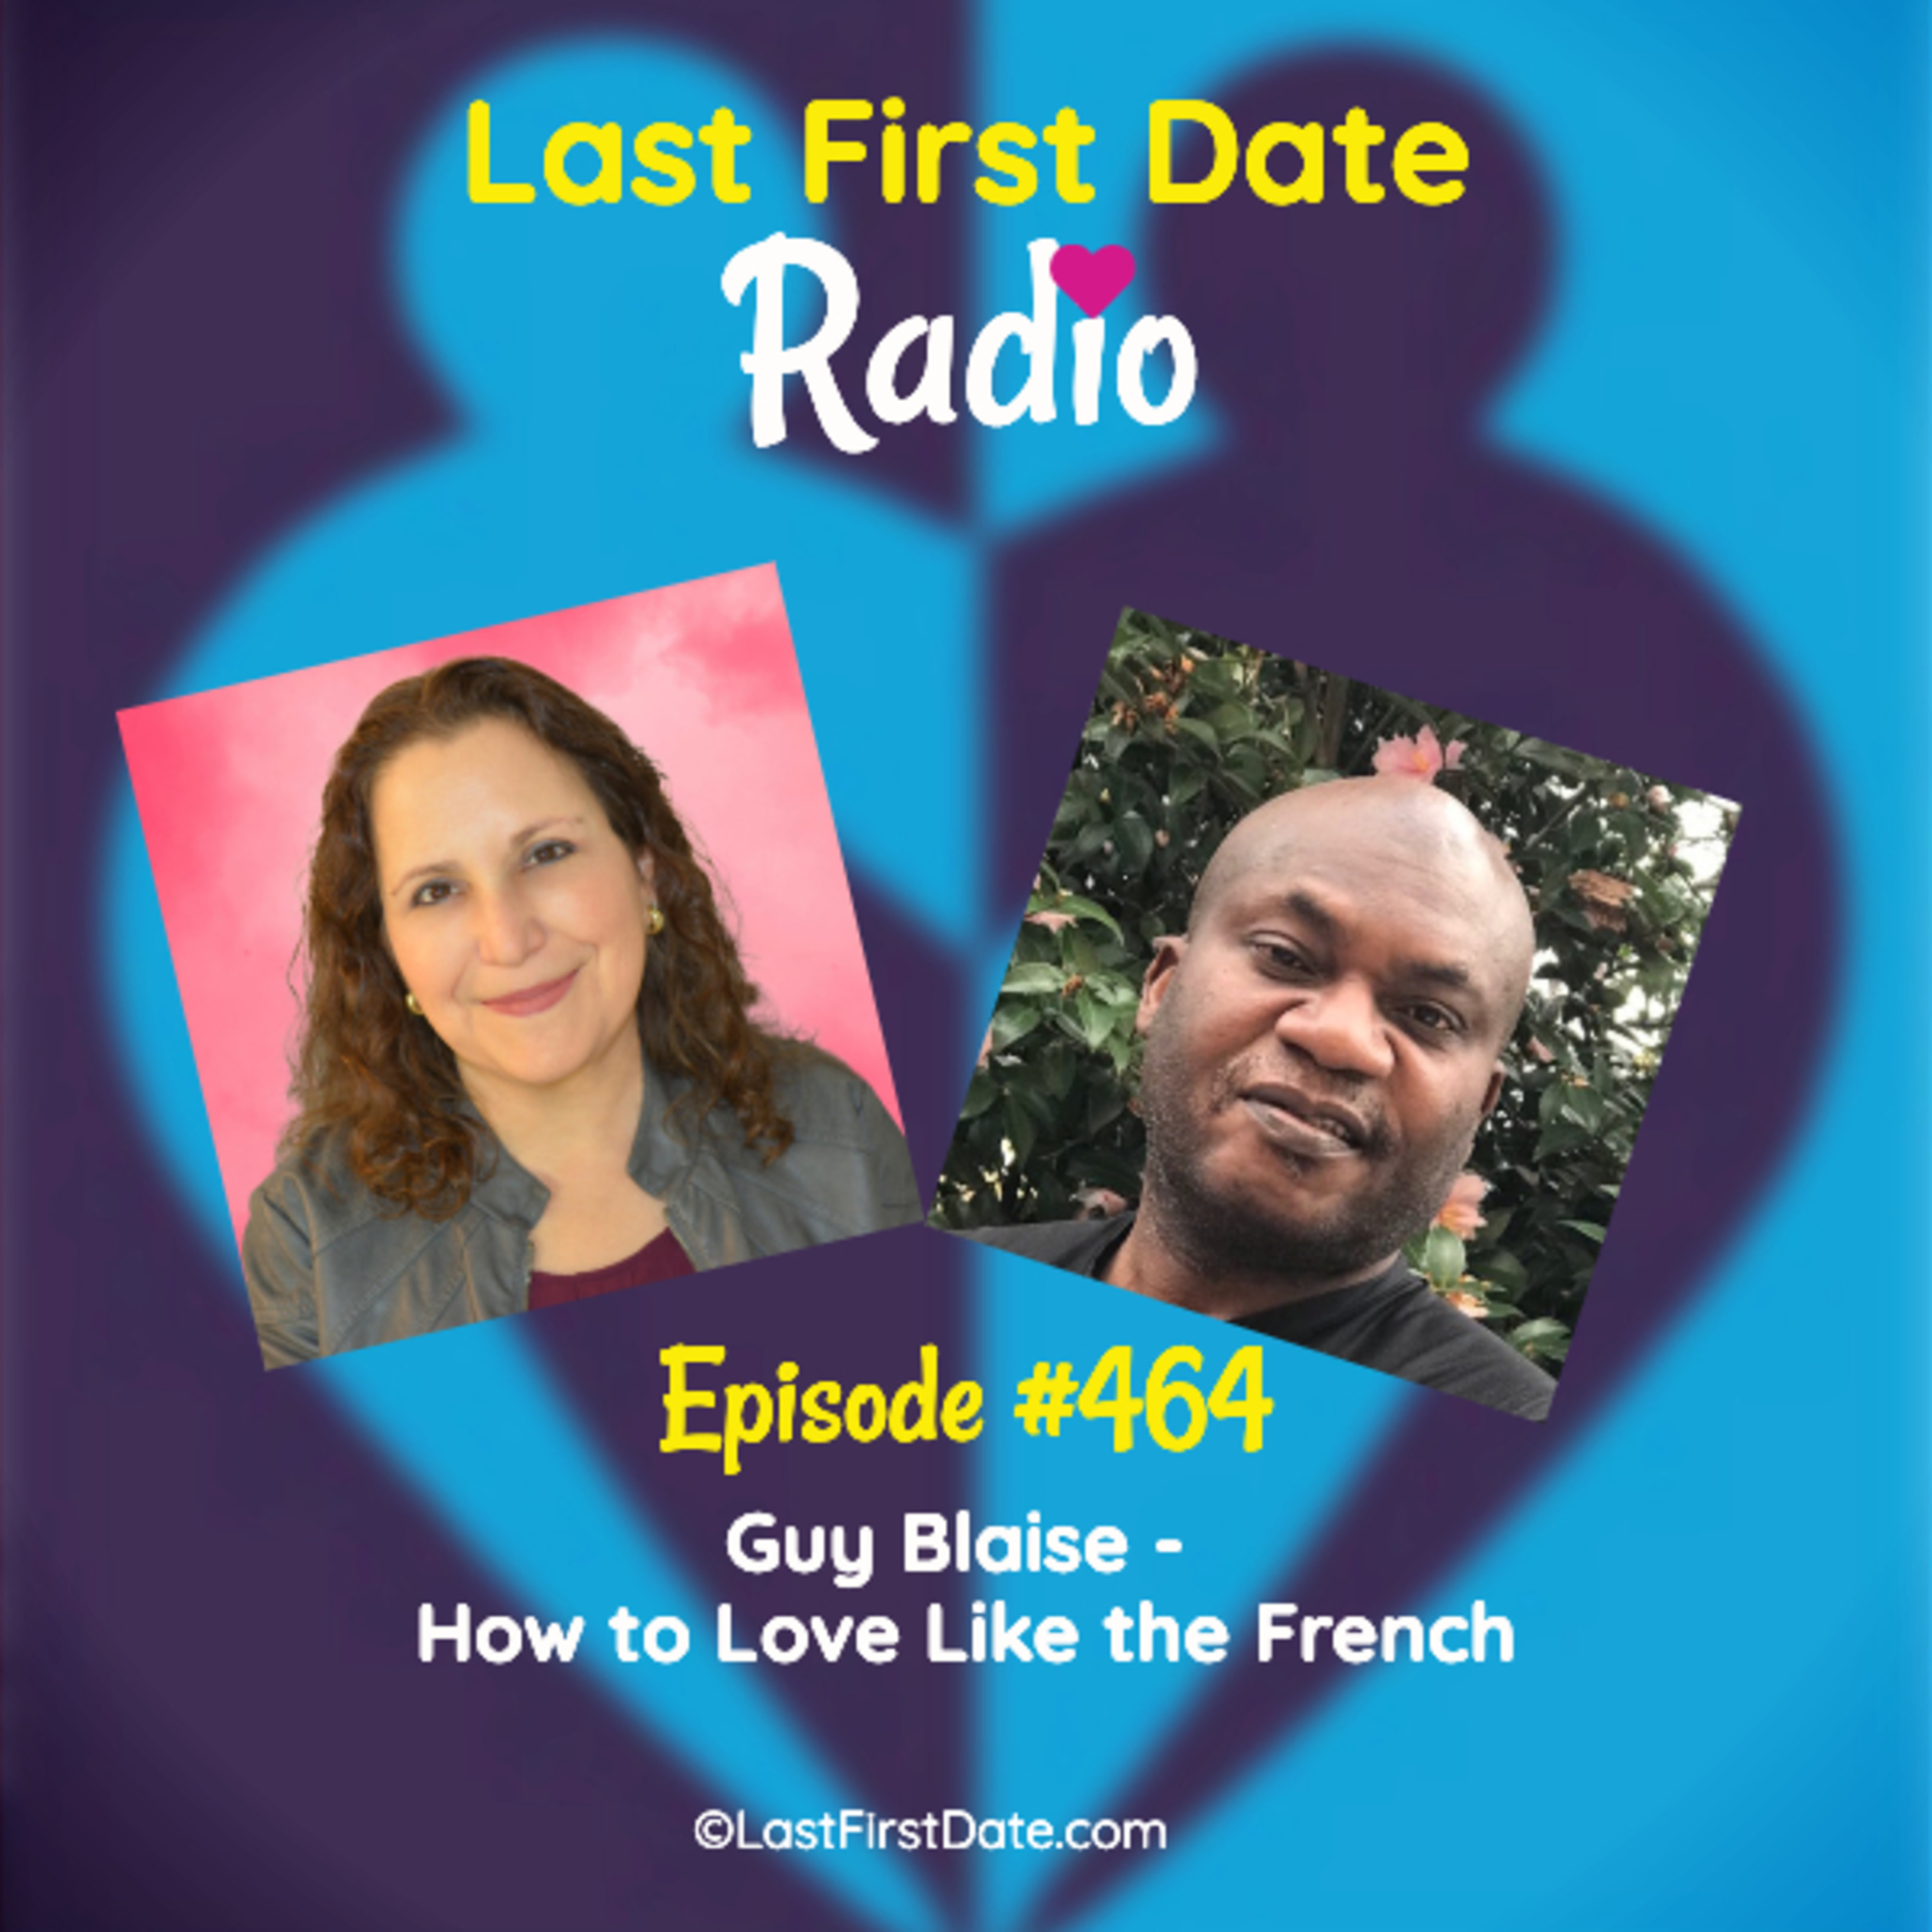 Last First Date Radio - EP 464: Guy Blaise - How to Love Like the French